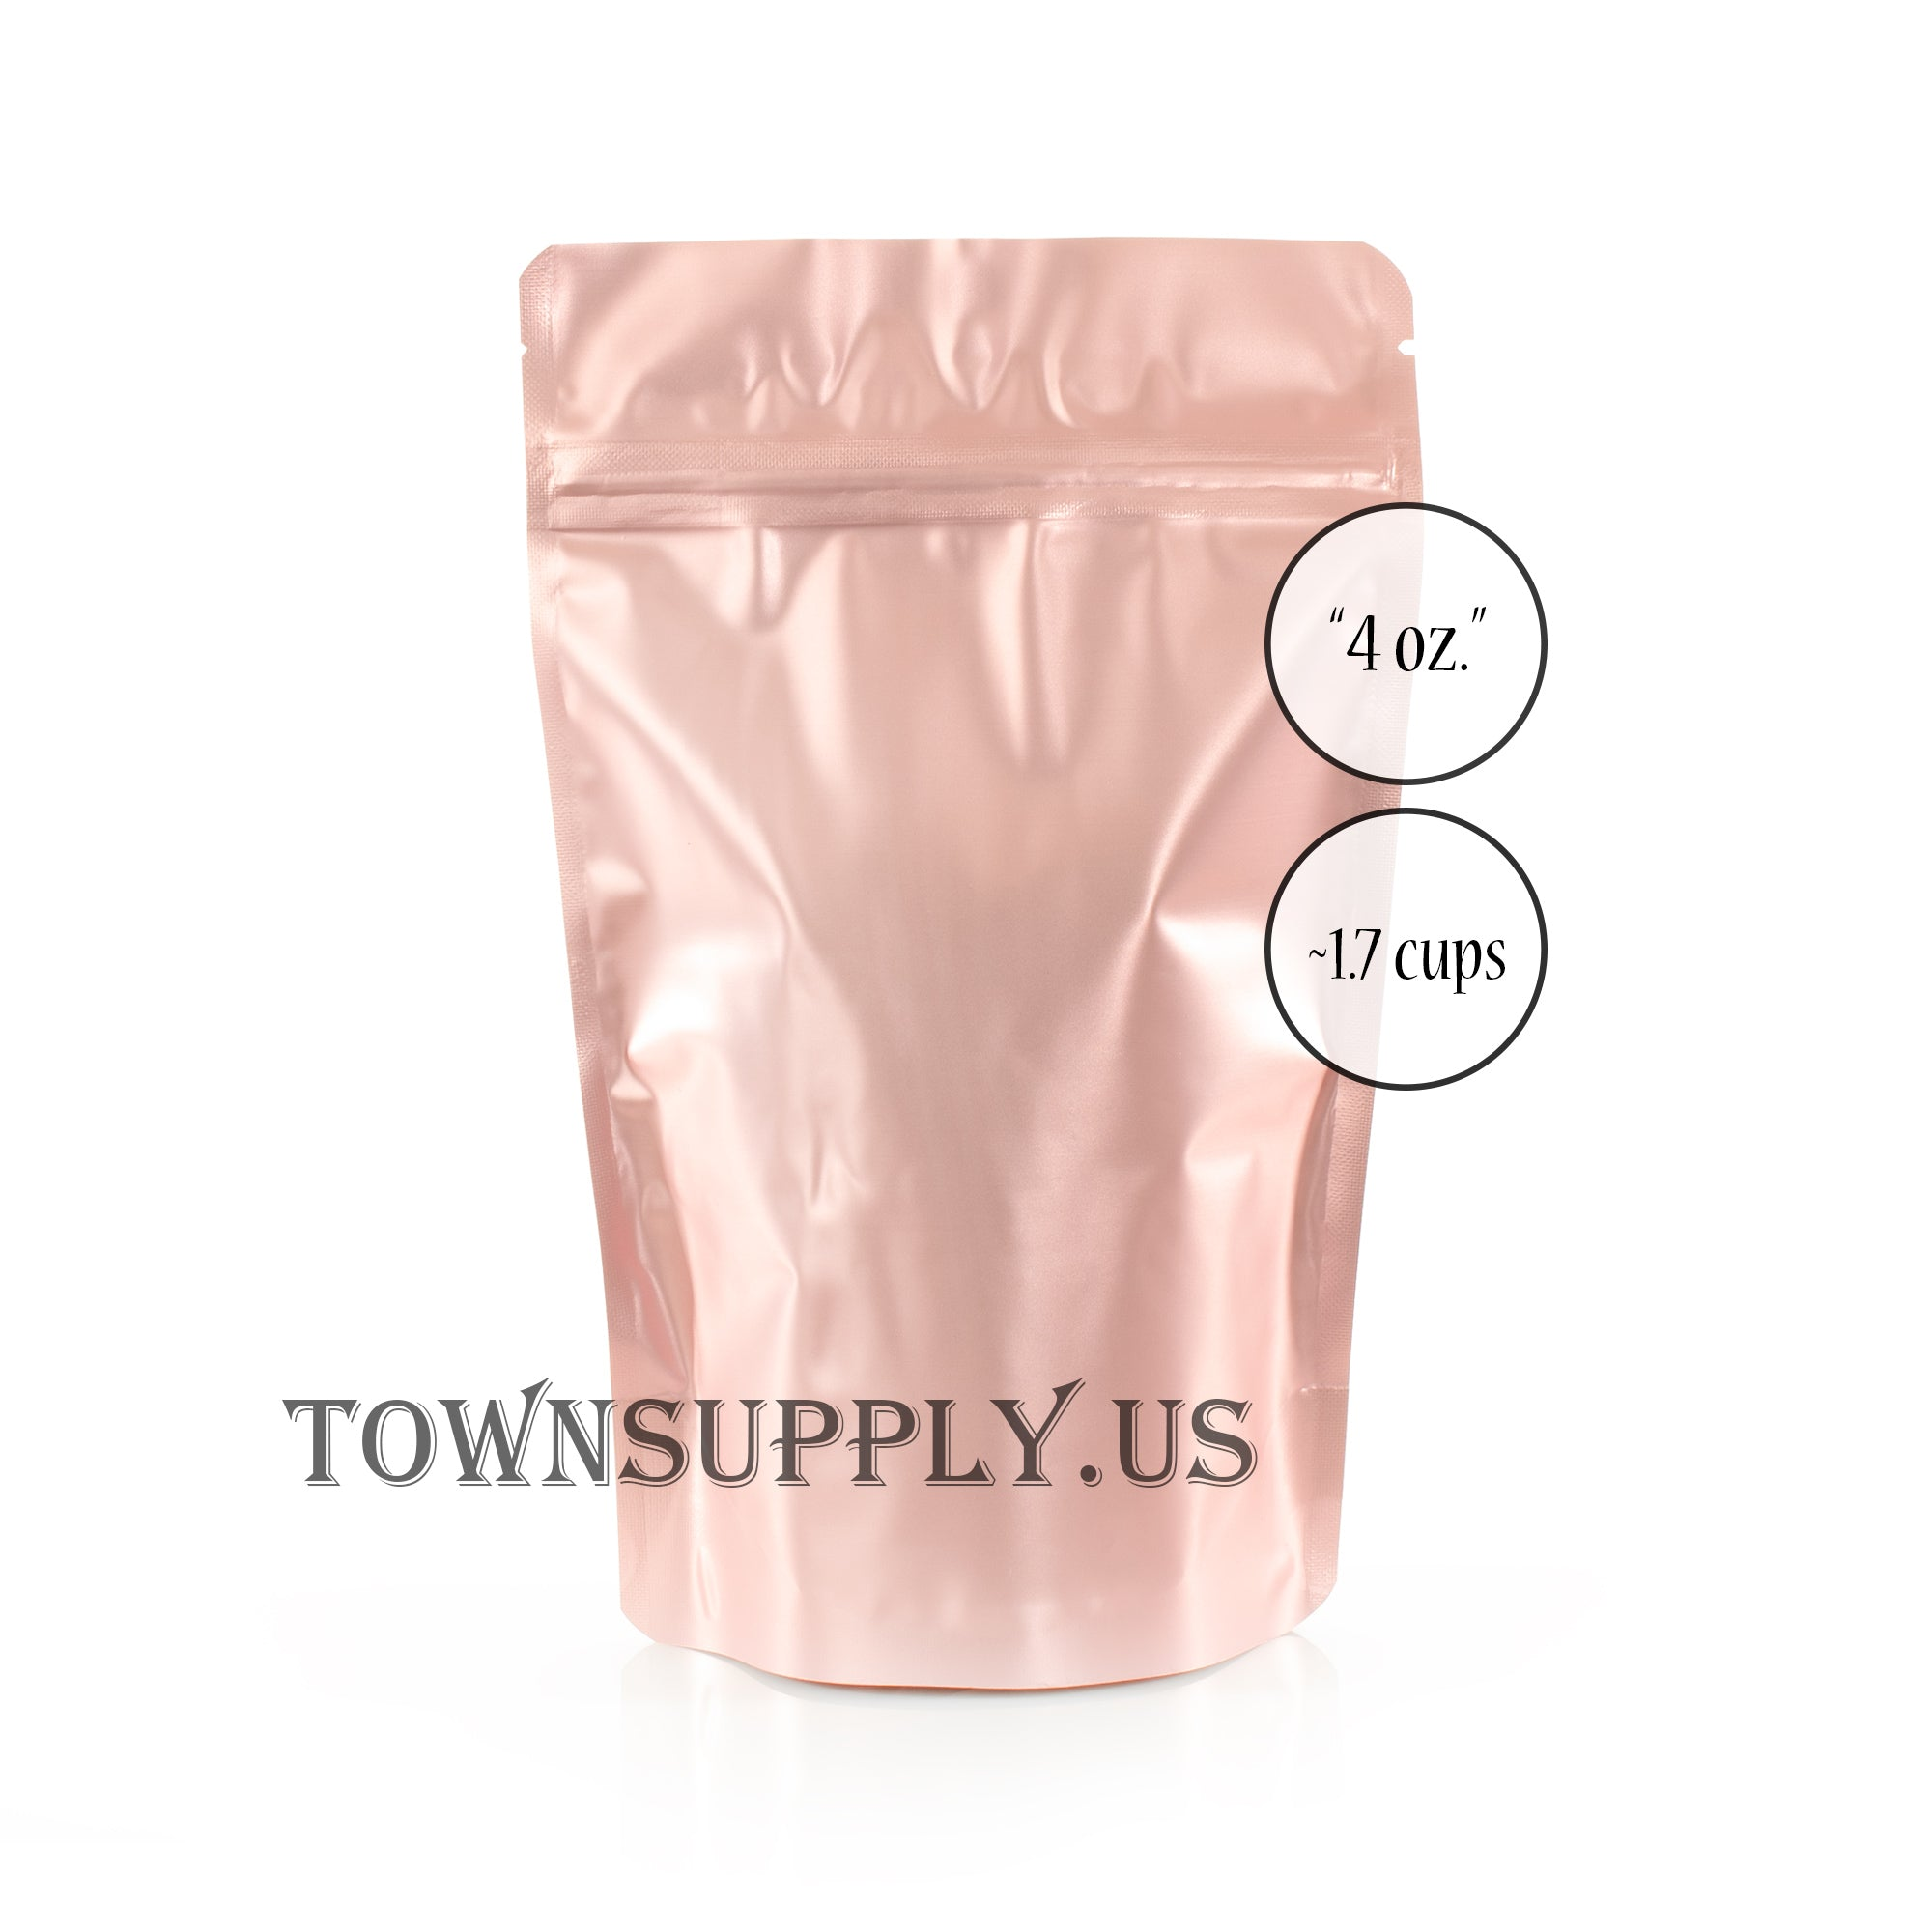 rose gold foil resealable stand up pouch, 4 oz. storage bags - Town Supply